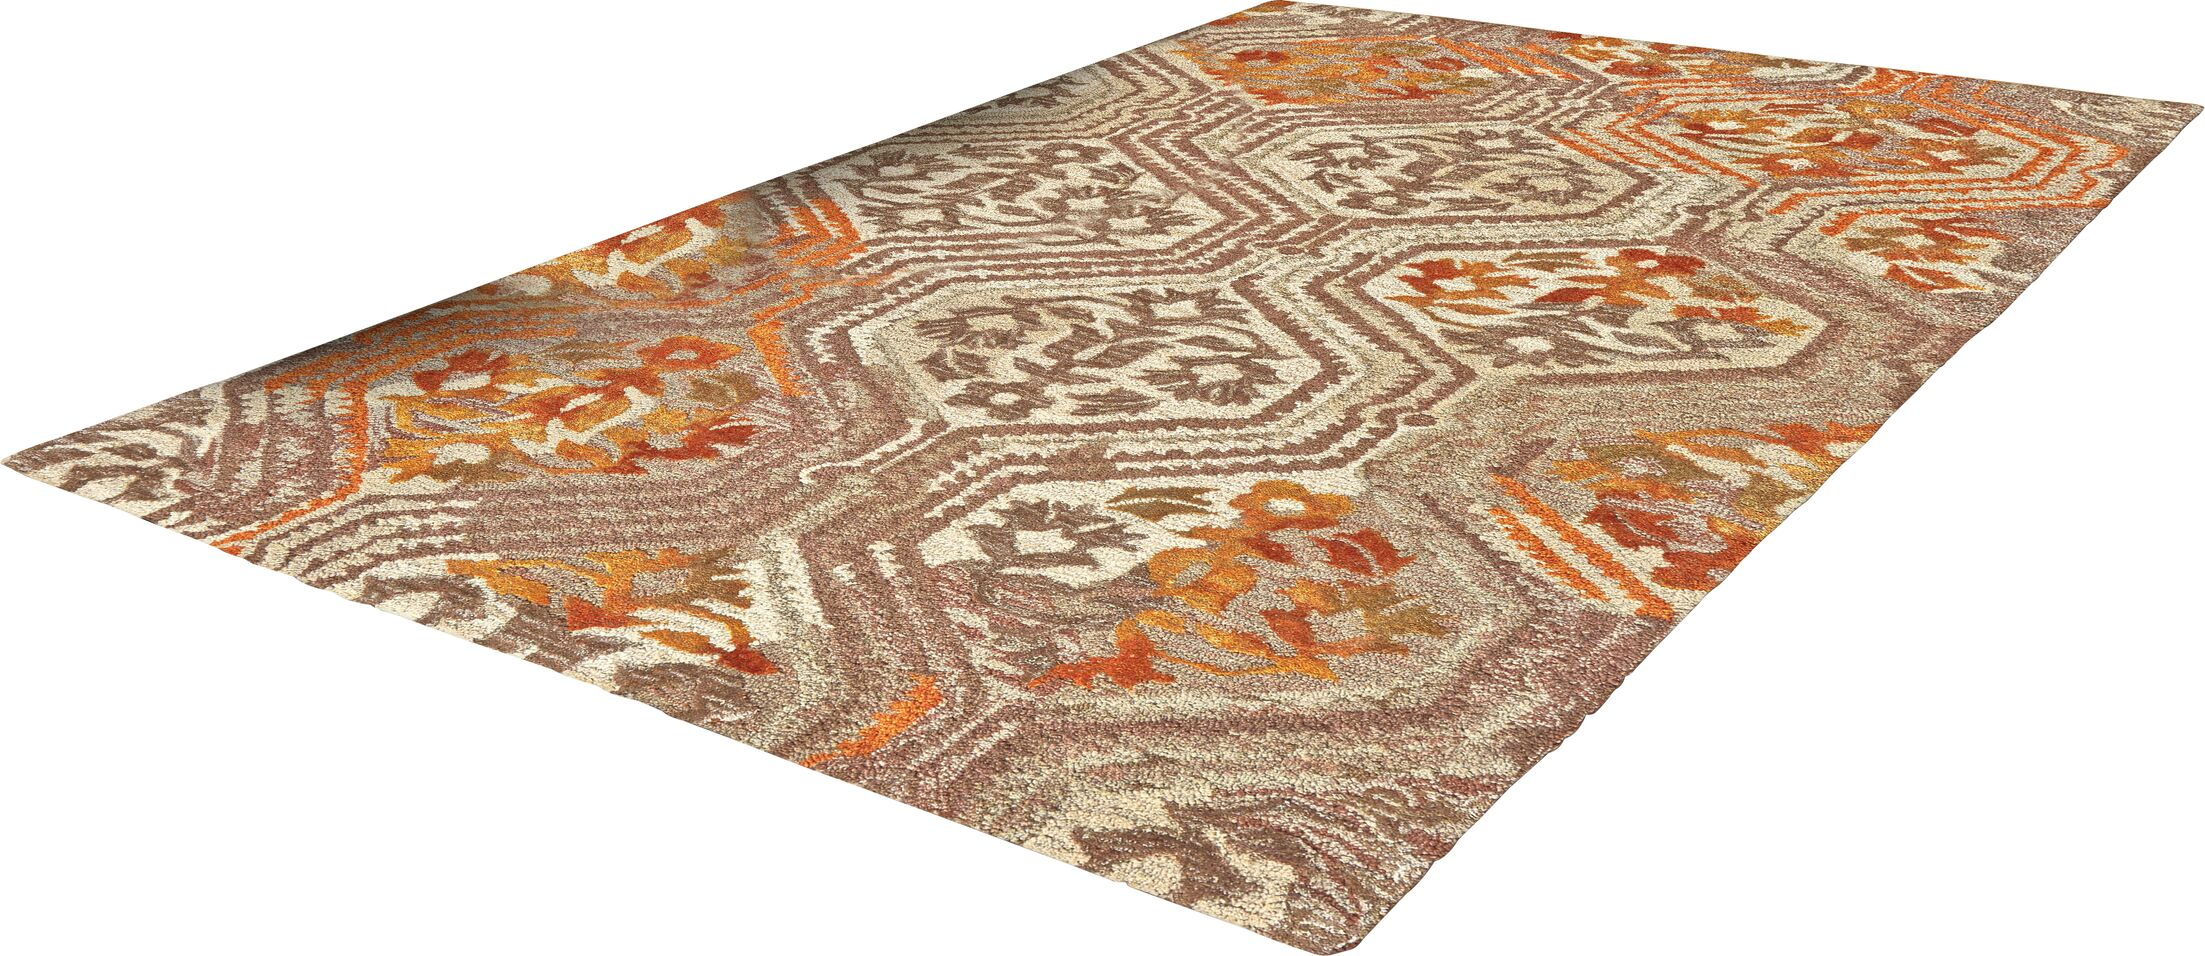 Aster Hand-Tufted Area Rug Rug Size: Rectangle 5' x 8'